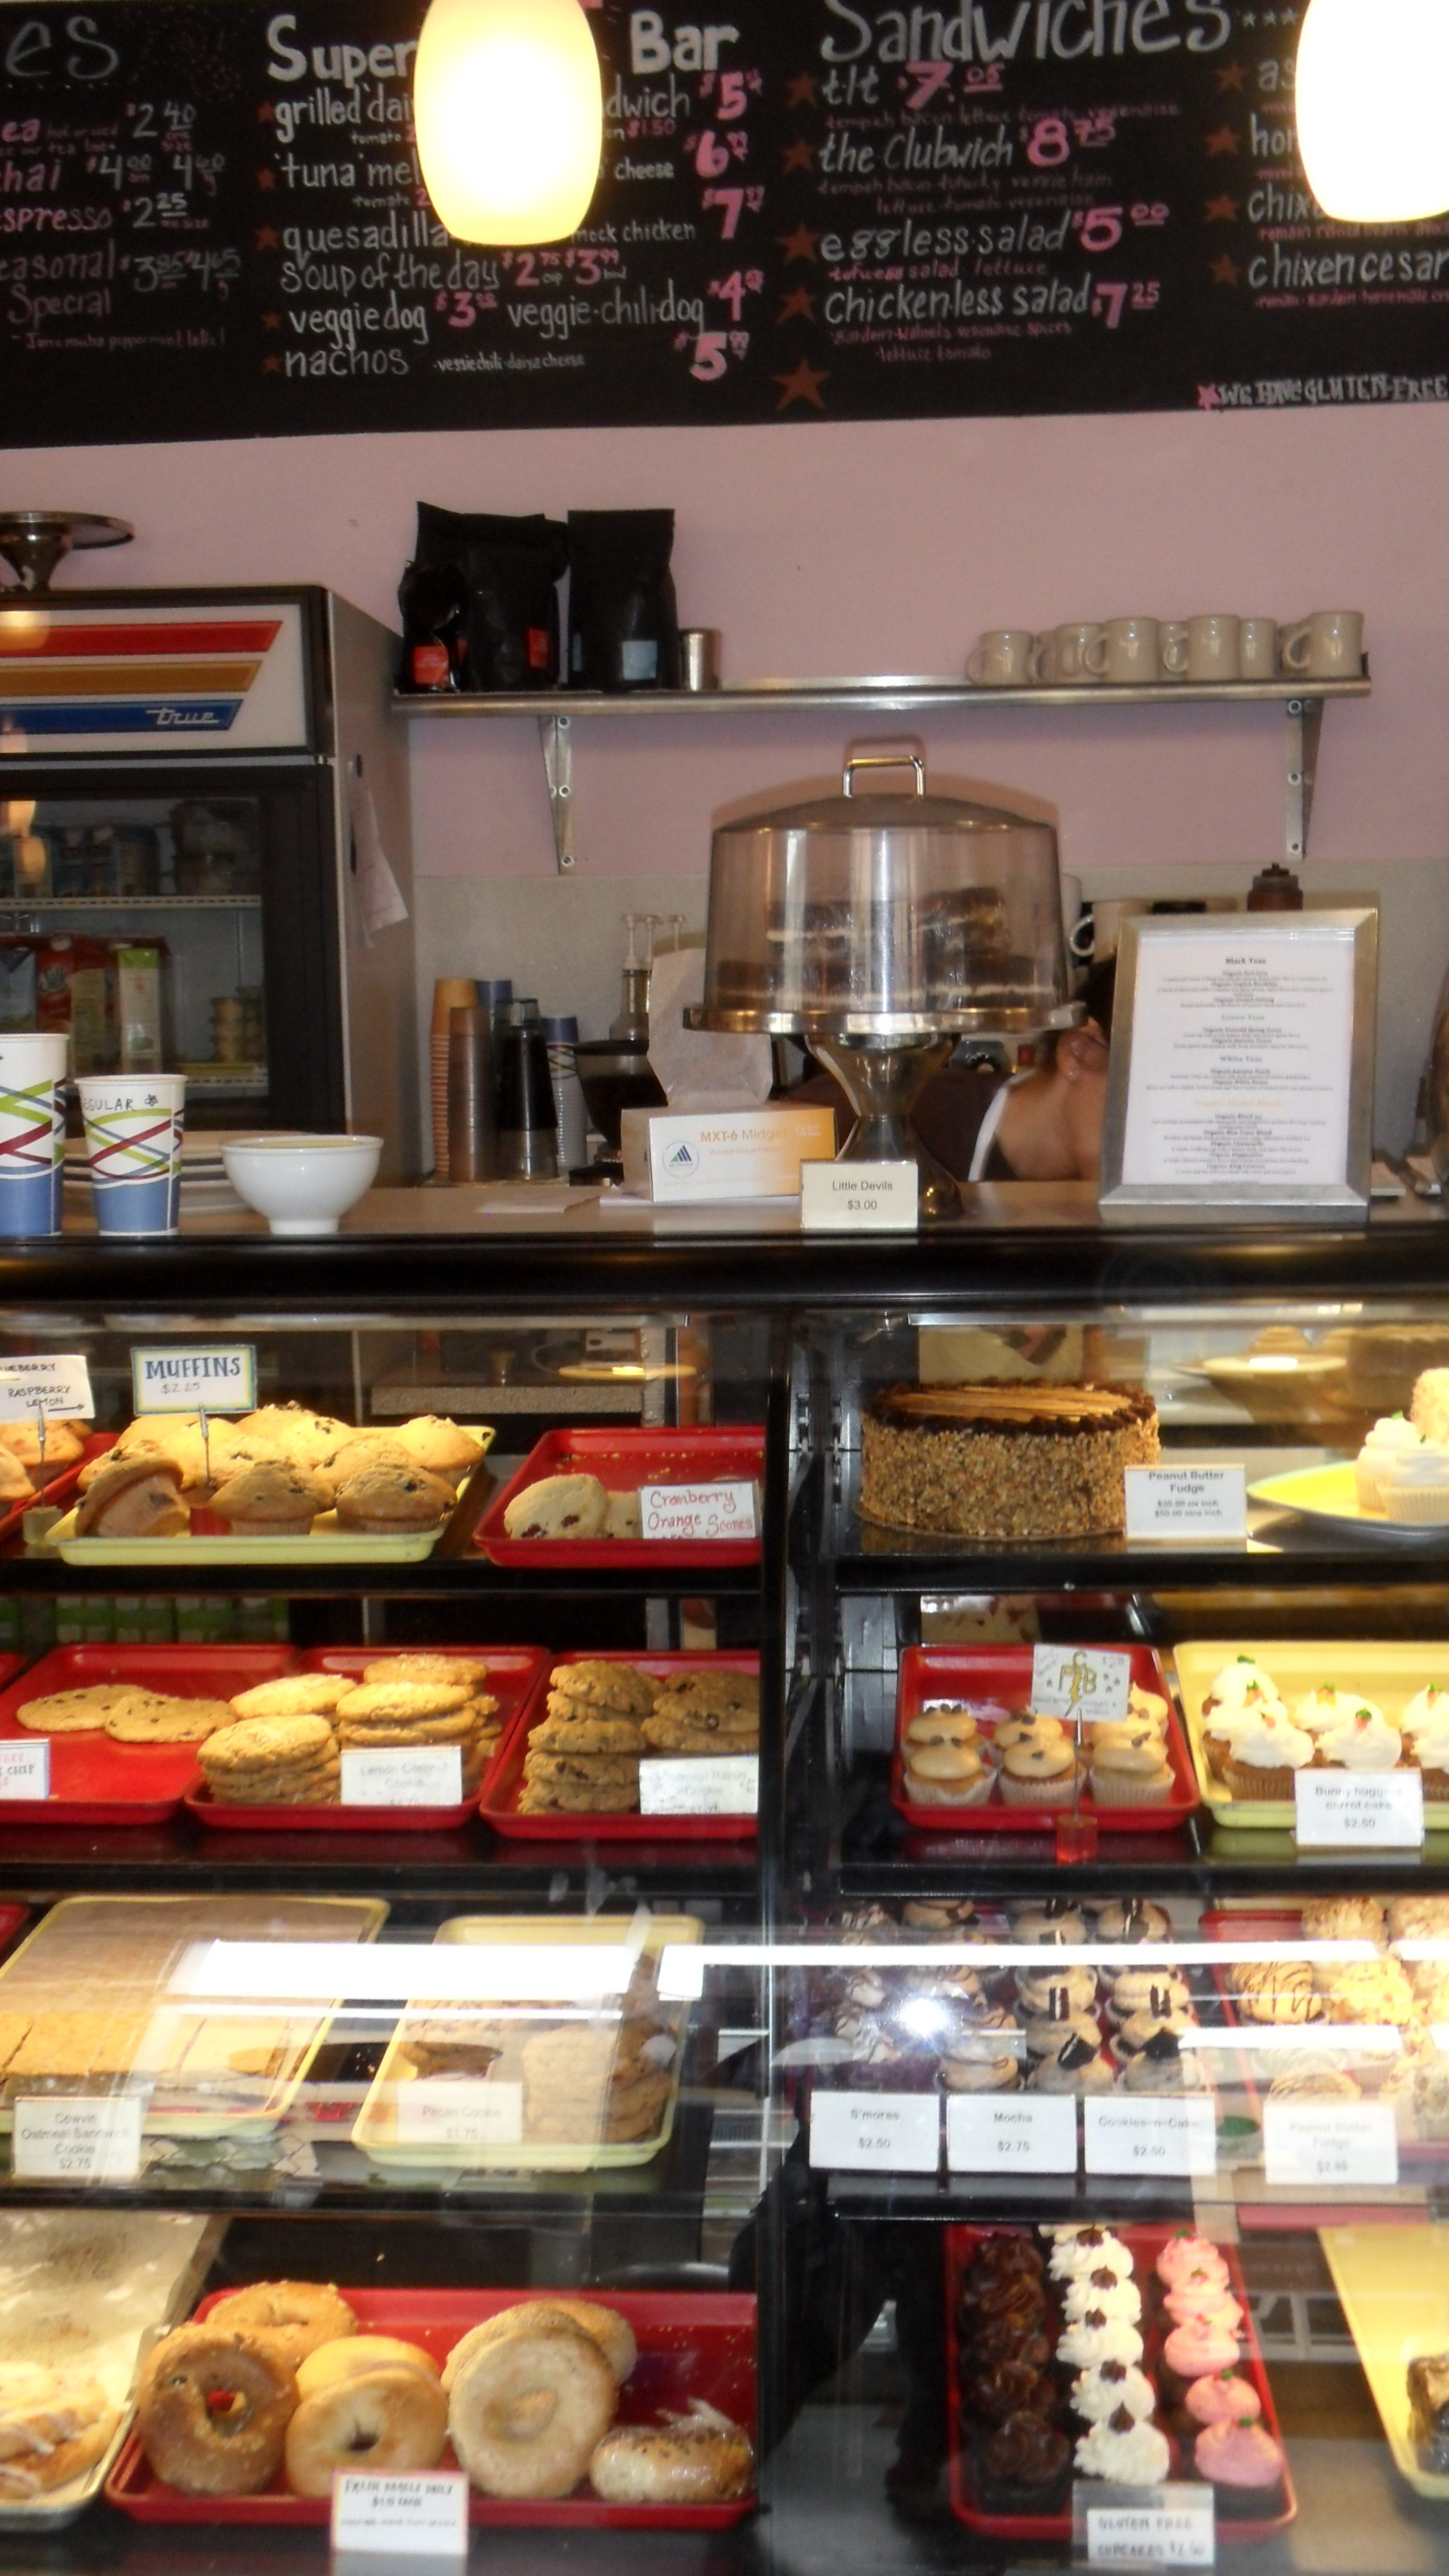 Sticky Fingers vegan Bakery counter looks just as amazingly delicious as it is!